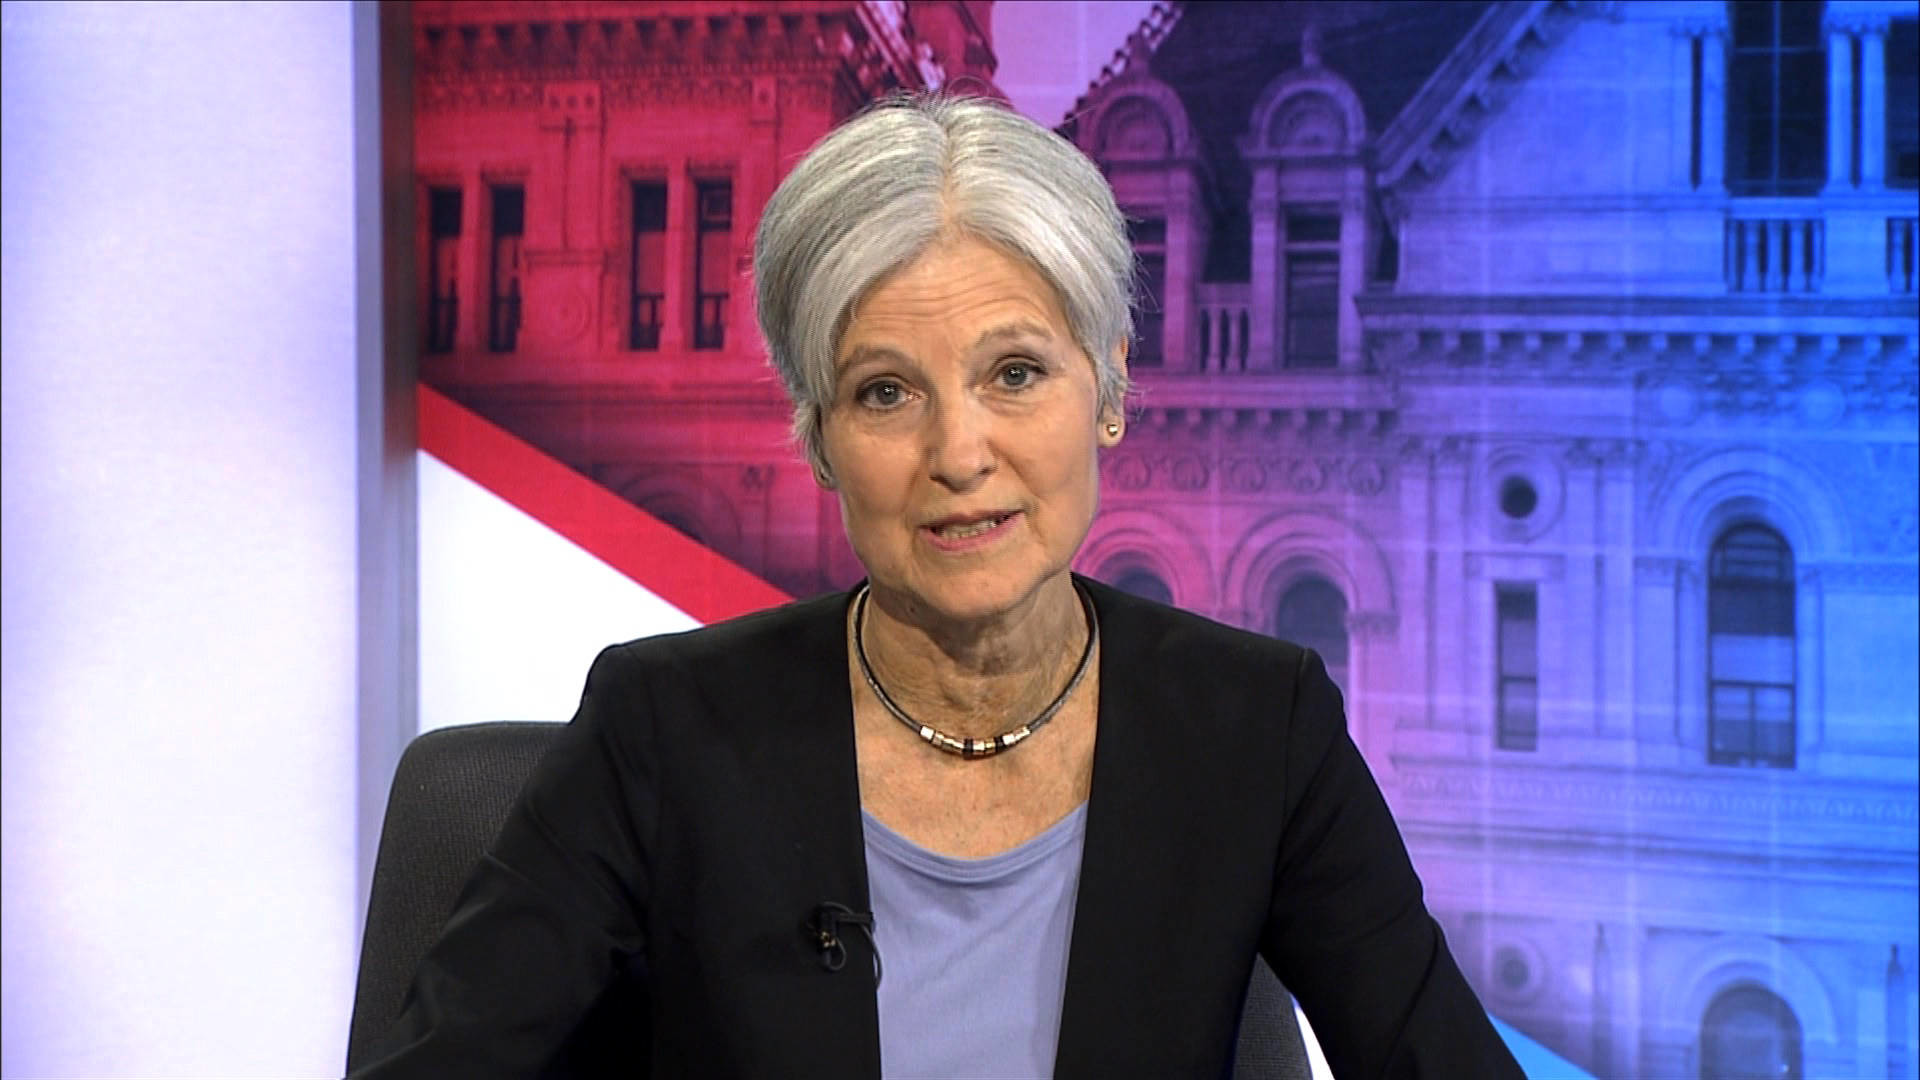 Green Party's Jill Stein: What We Fear from Donald Trump, We Have Already  Seen from Hillary Clinton | Democracy Now!